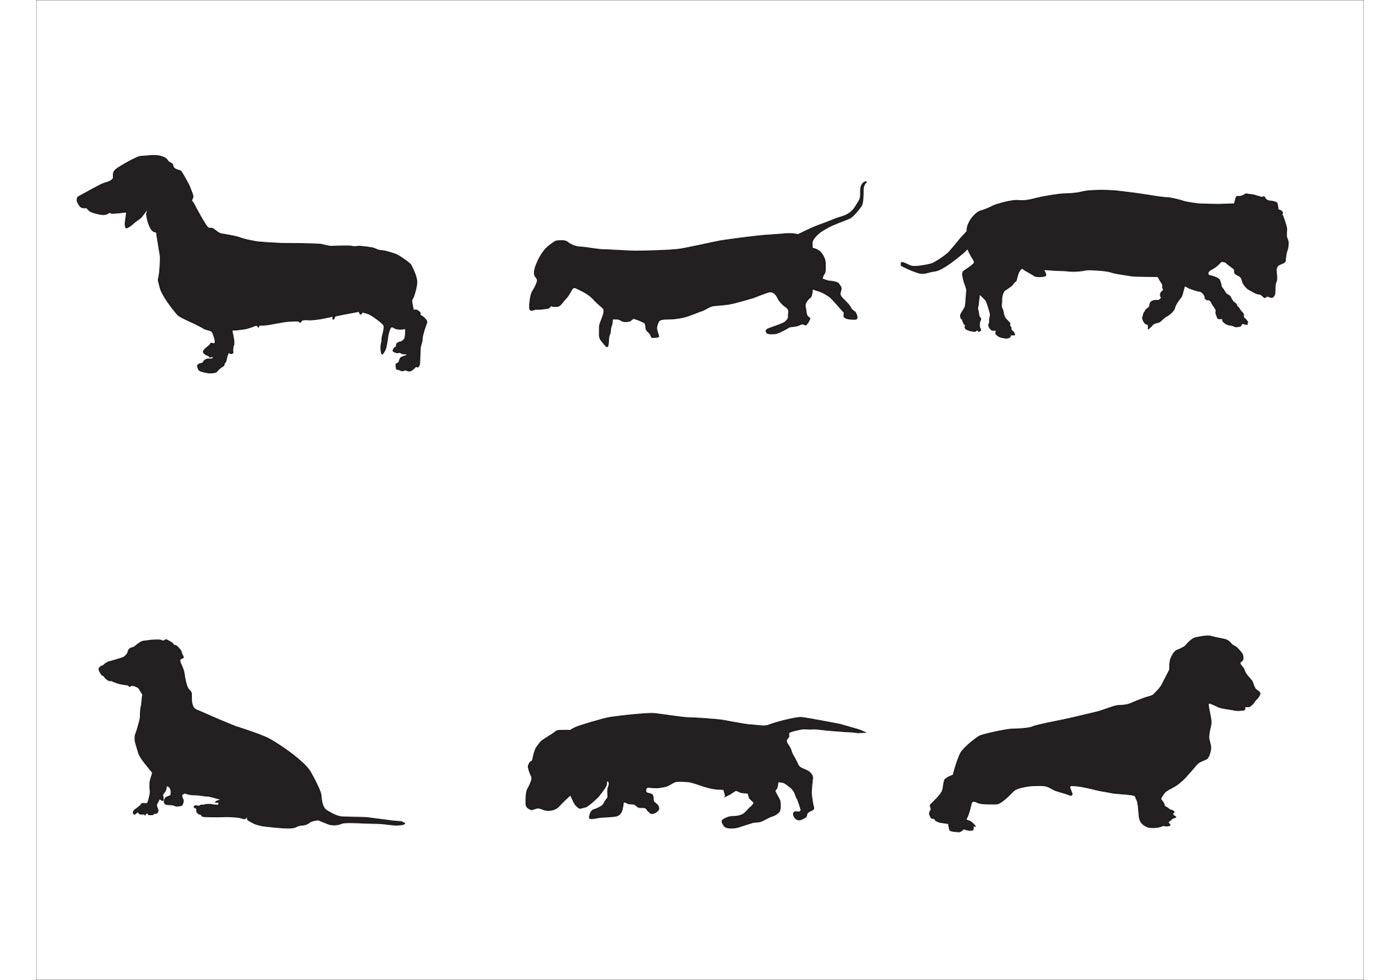 Dachshund Silhouette Printable At Getdrawings